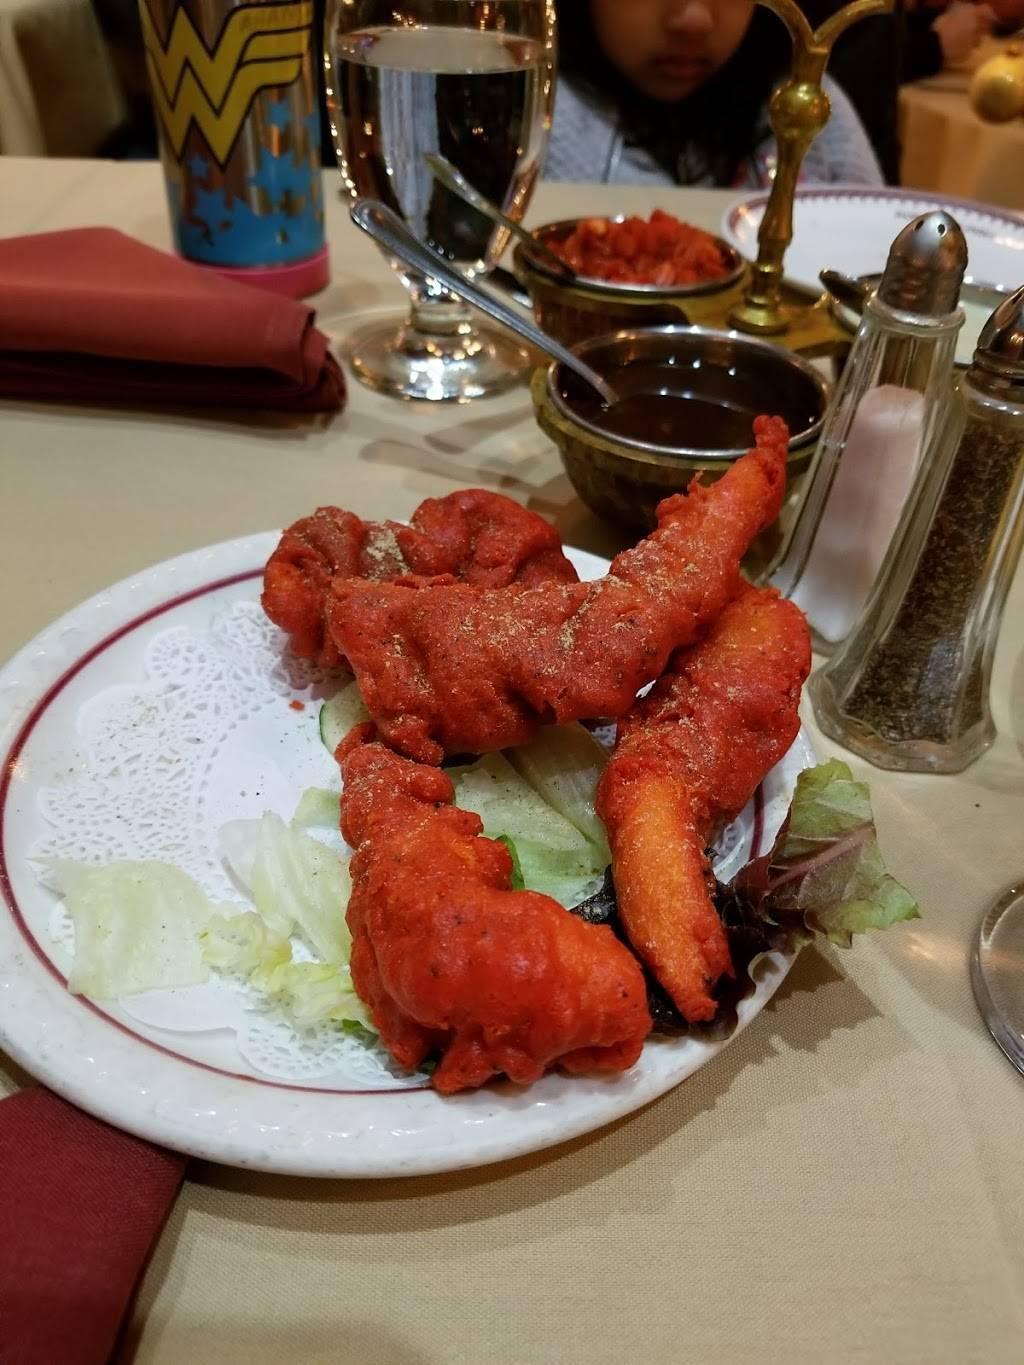 Passage to India | restaurant | 520 Race St, Harrisburg, PA 17104, USA | 7172331202 OR +1 717-233-1202